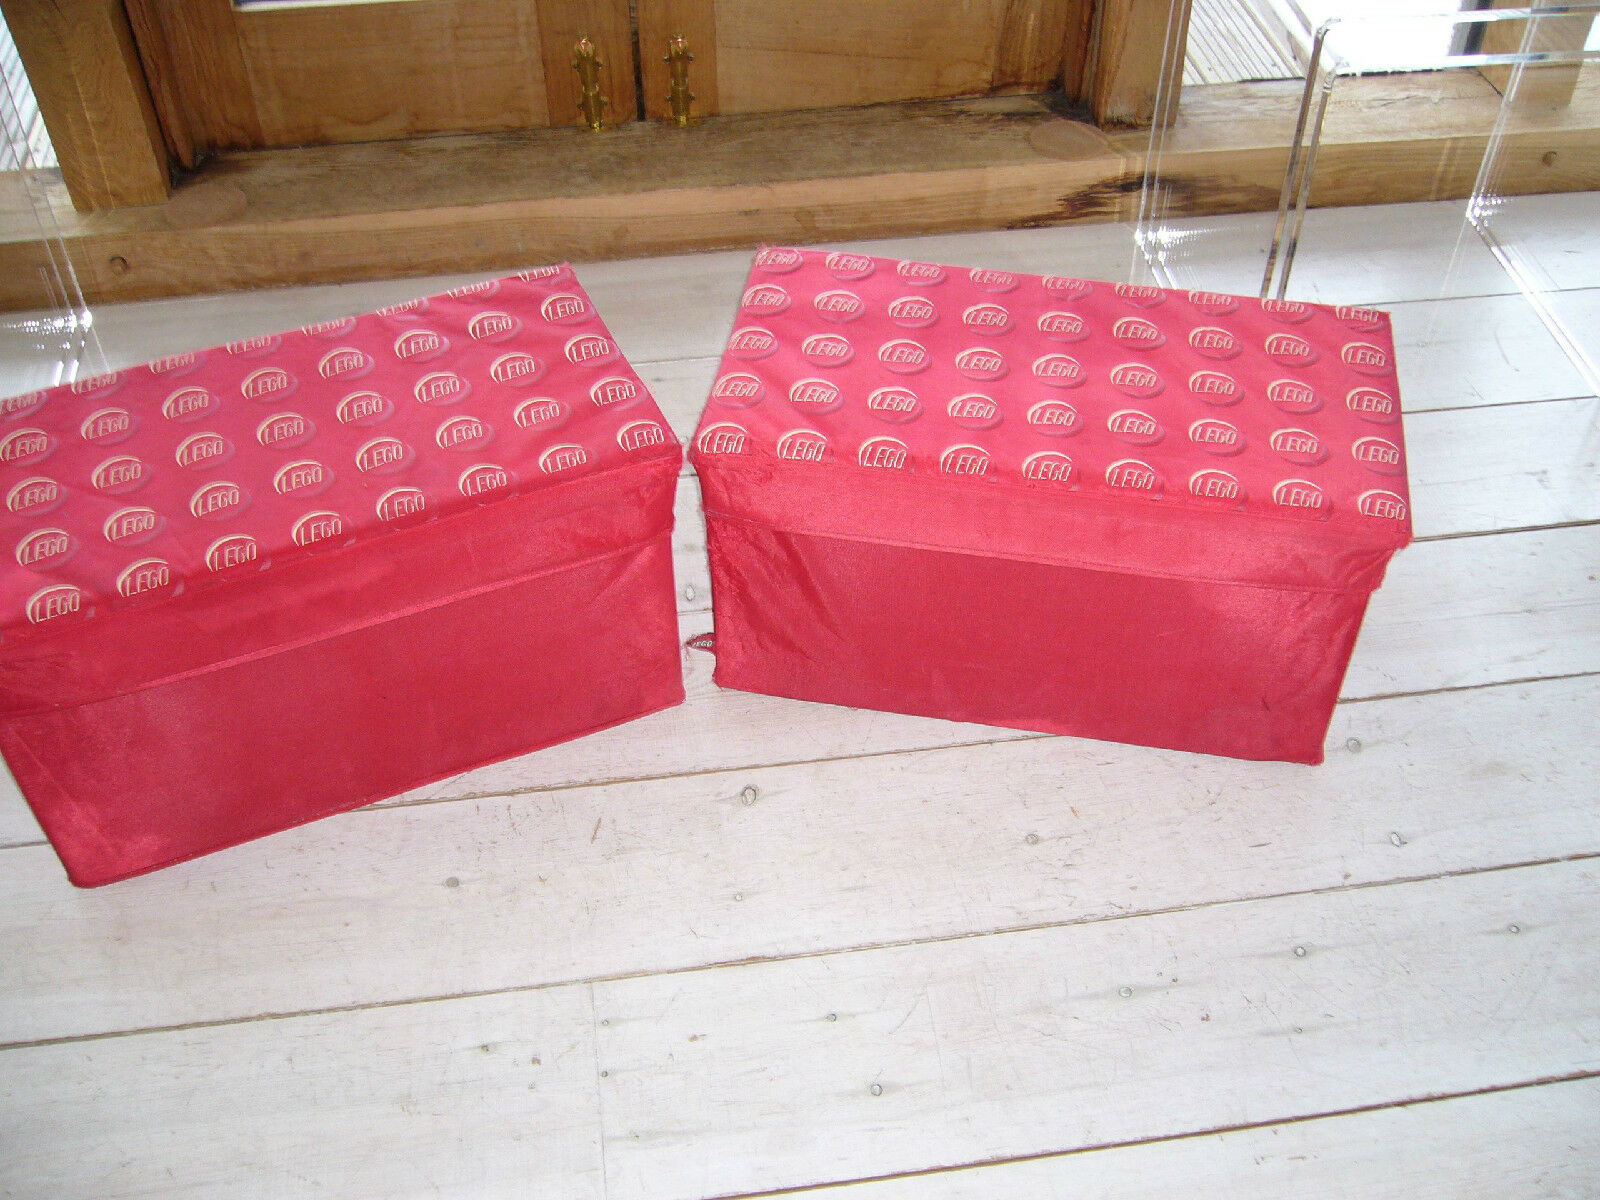 PAIR OF VINTAGE LEGO ROT STORAGE BOXES WITH SEATS ON TOP, 24